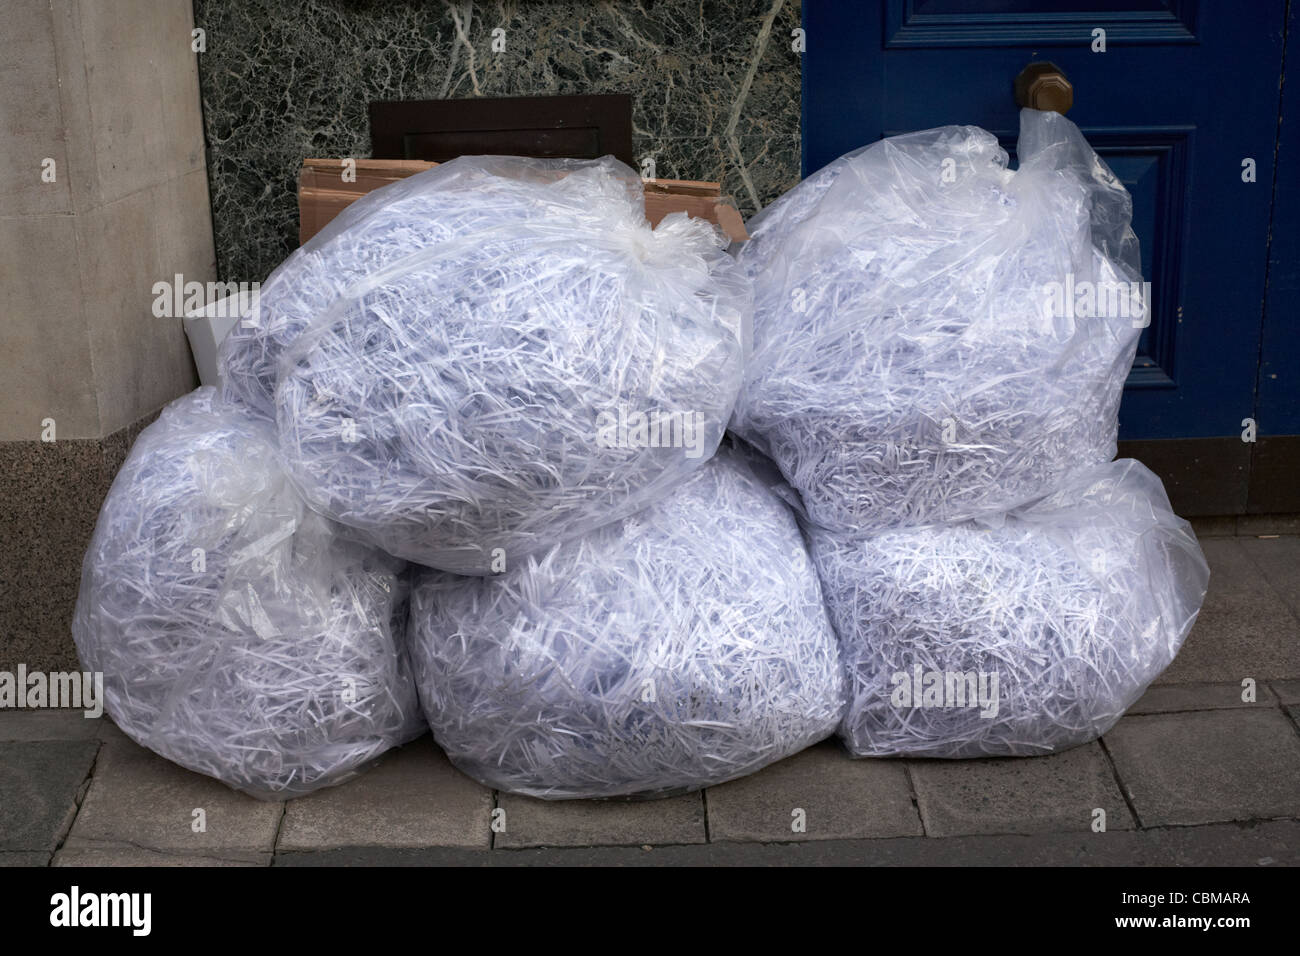 bags of shredded paper documents sitting outside an office belfast northern ireland uk united kingdom - Stock Image